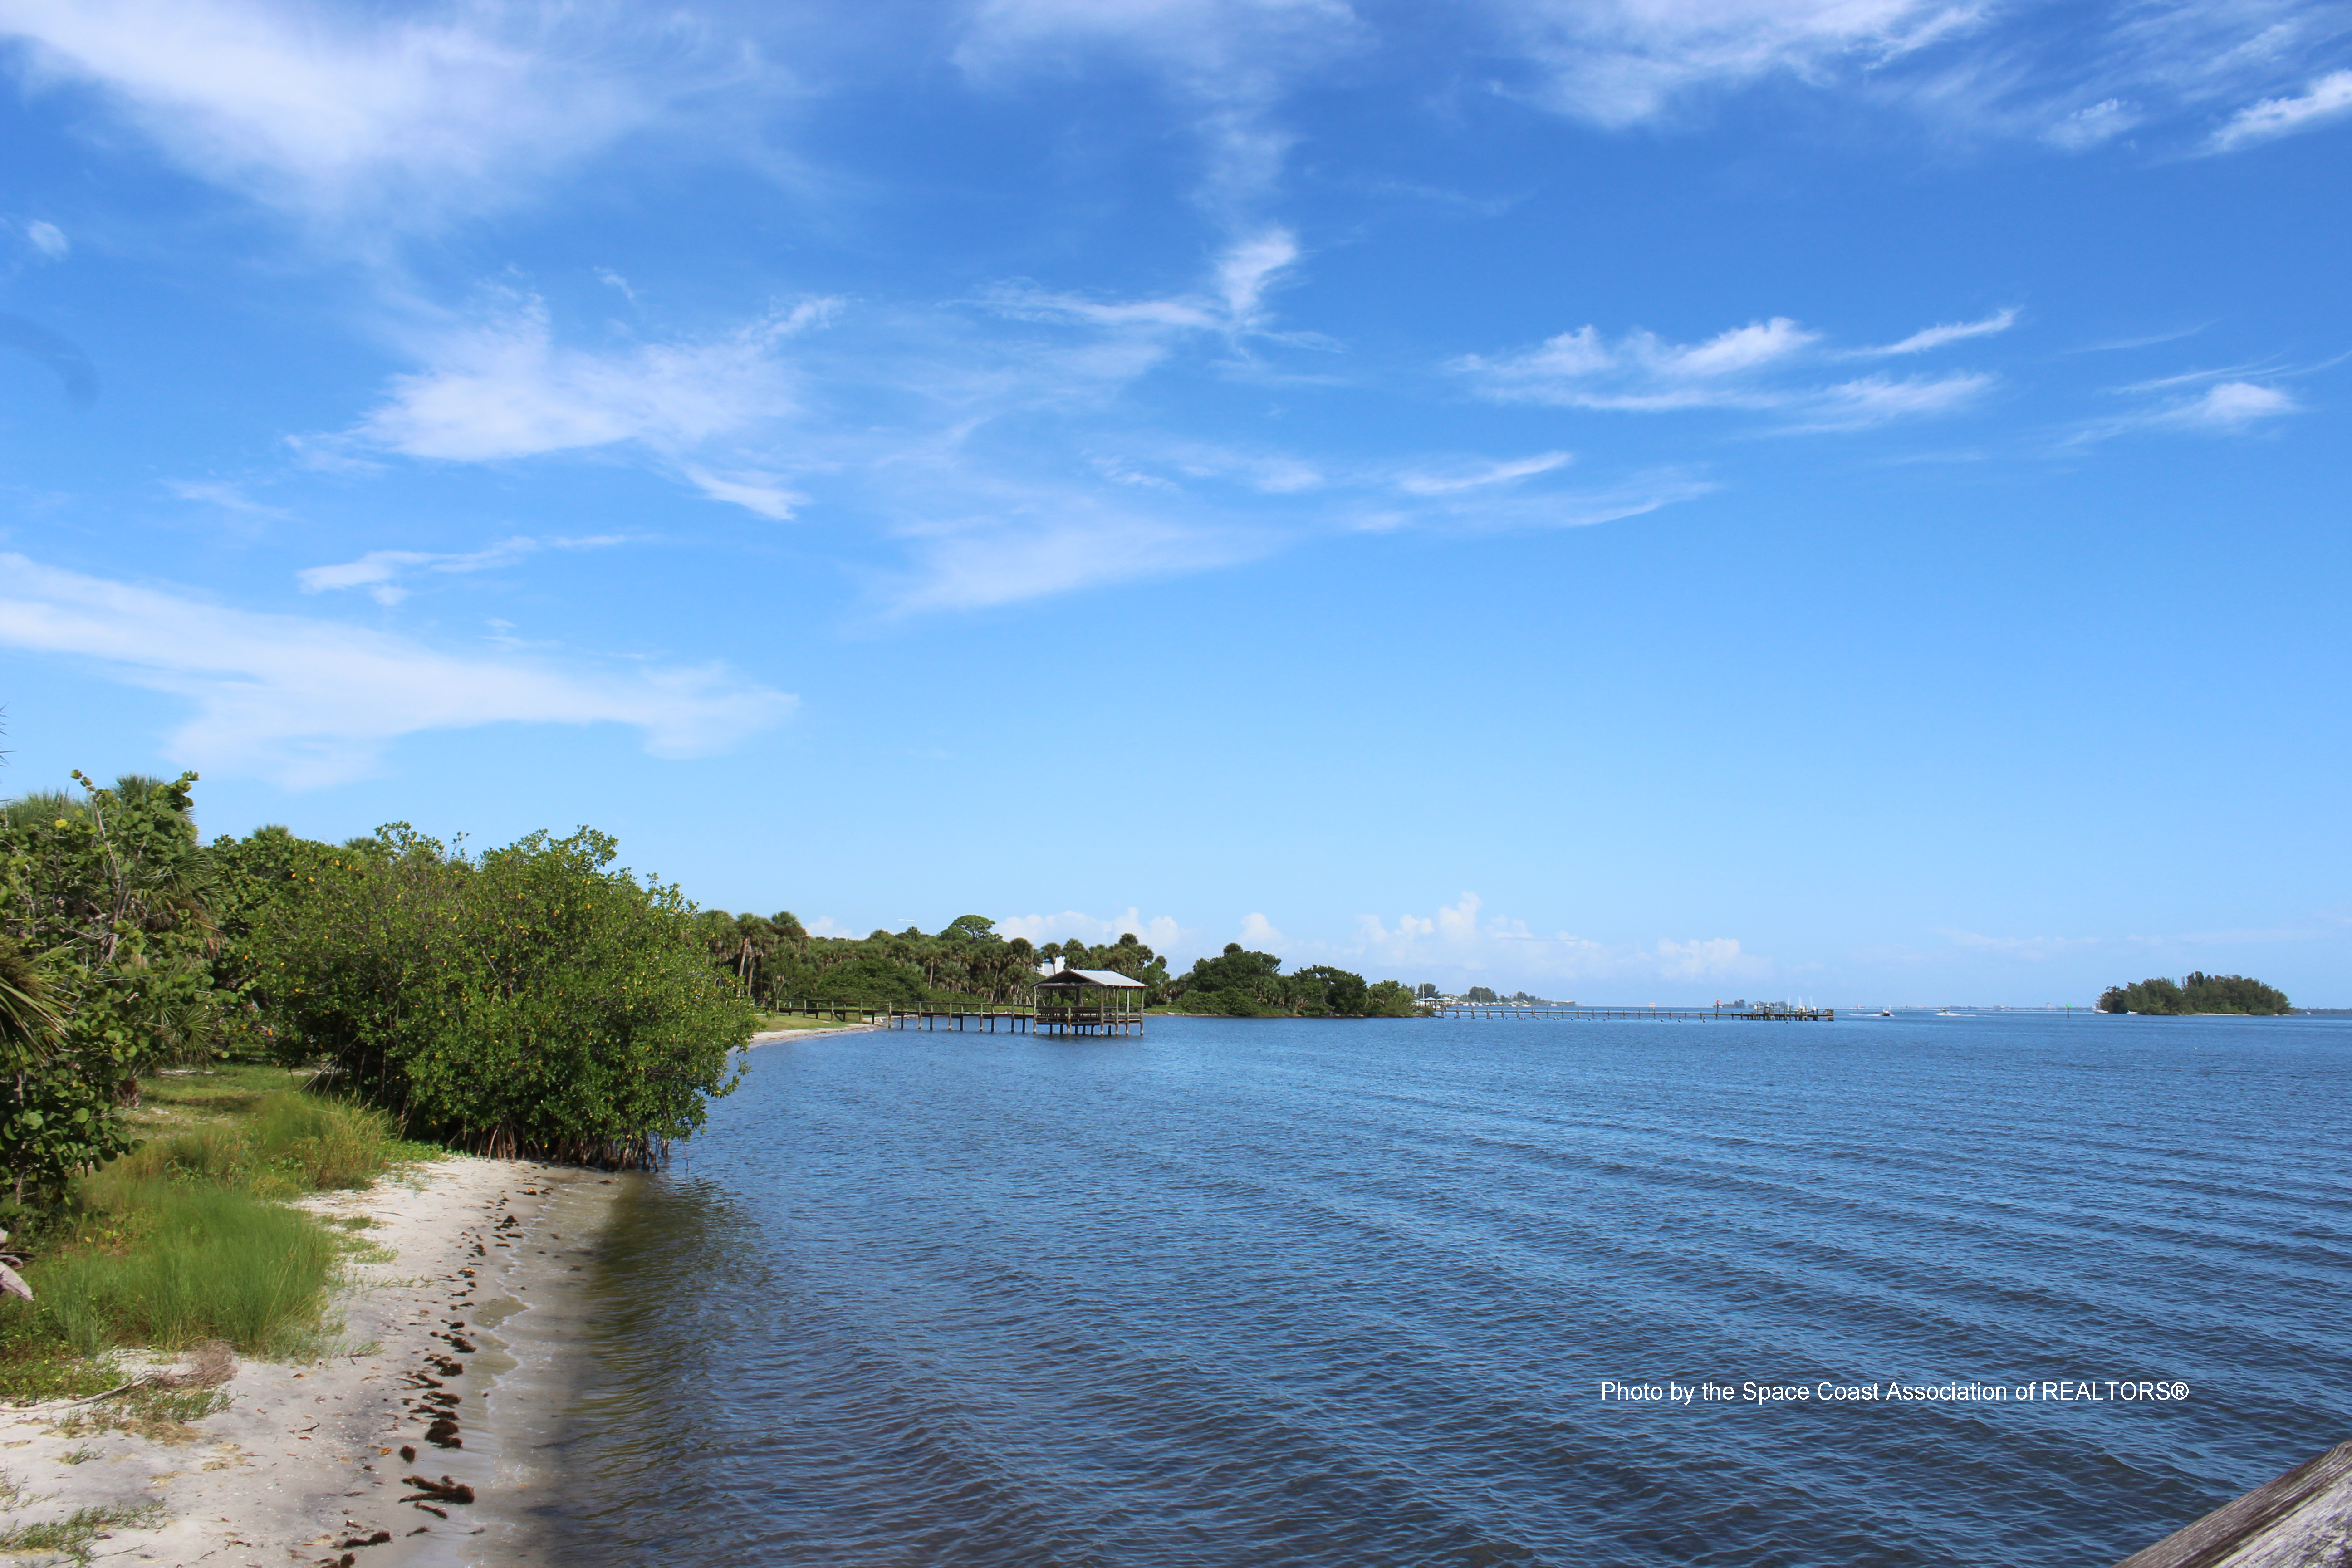 View of Fisherman's Landing from the shore in Grant-Valkaria, Florida